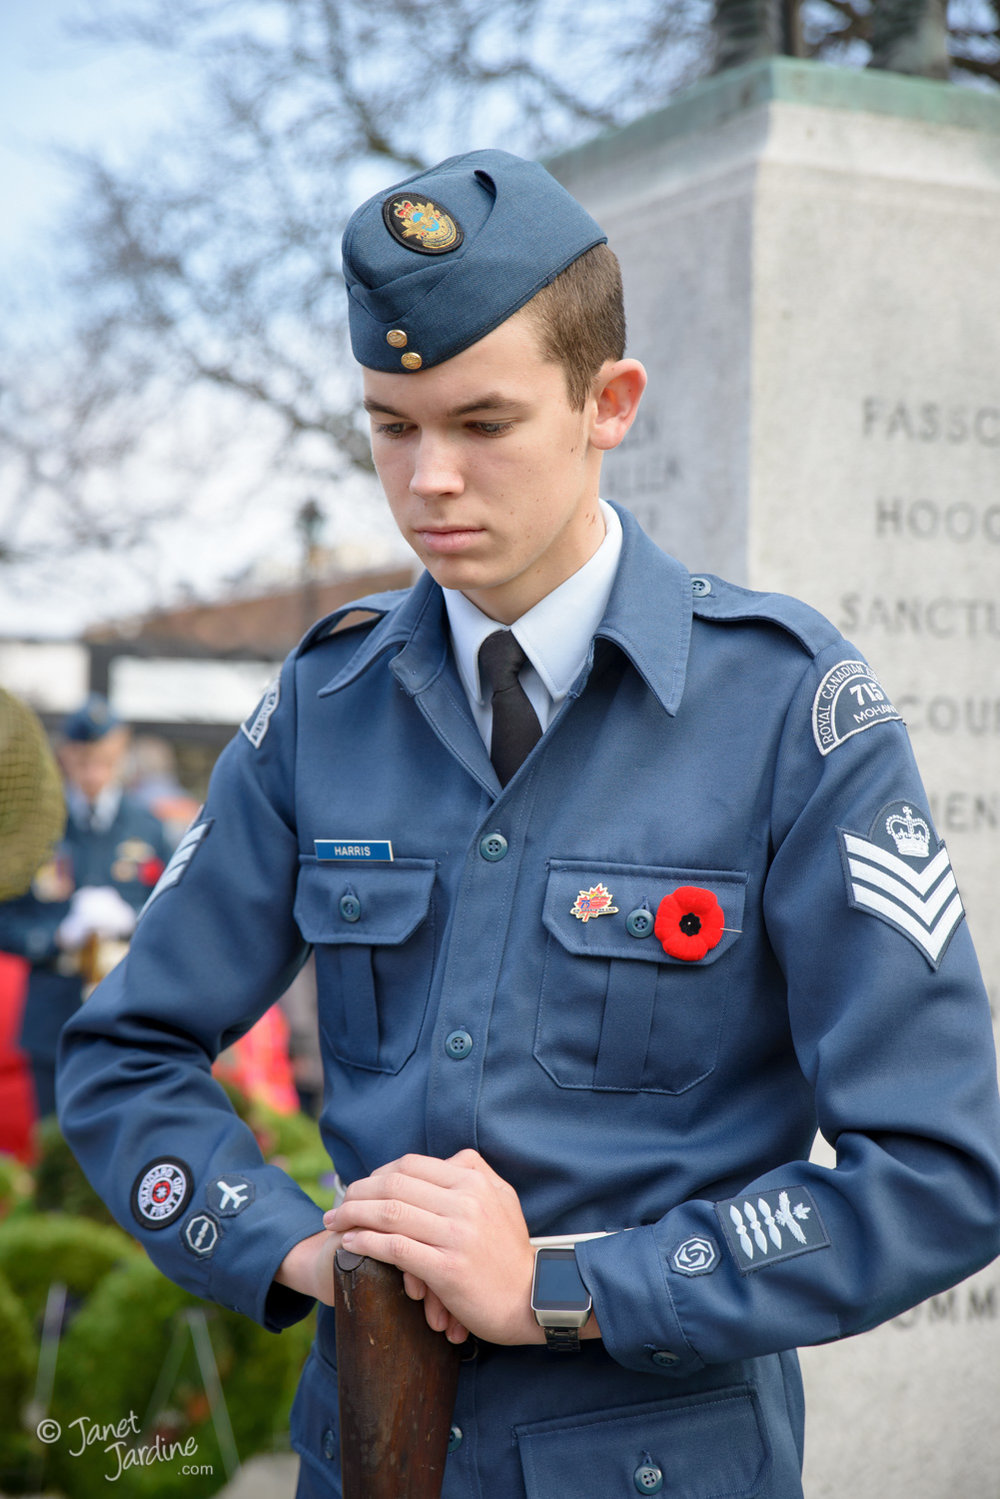 Standing-watch-at-the-cenotaph_Photo_copyright_Janet_Jardine_SquareSpace.jpg